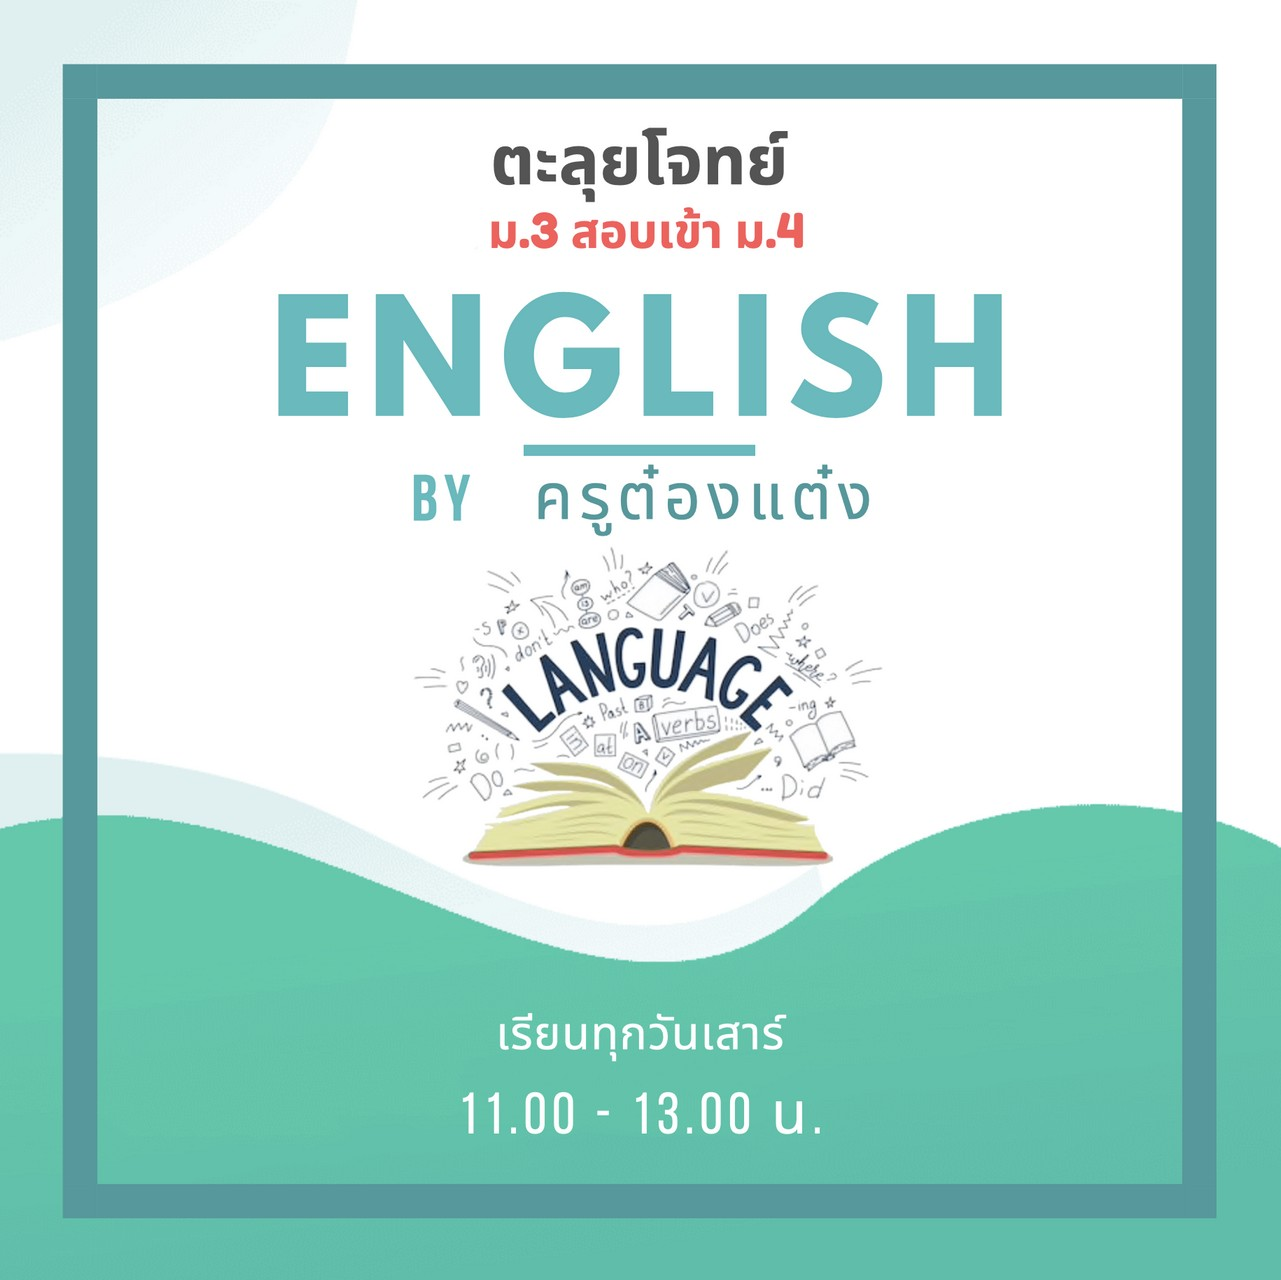 course-onet-english-image